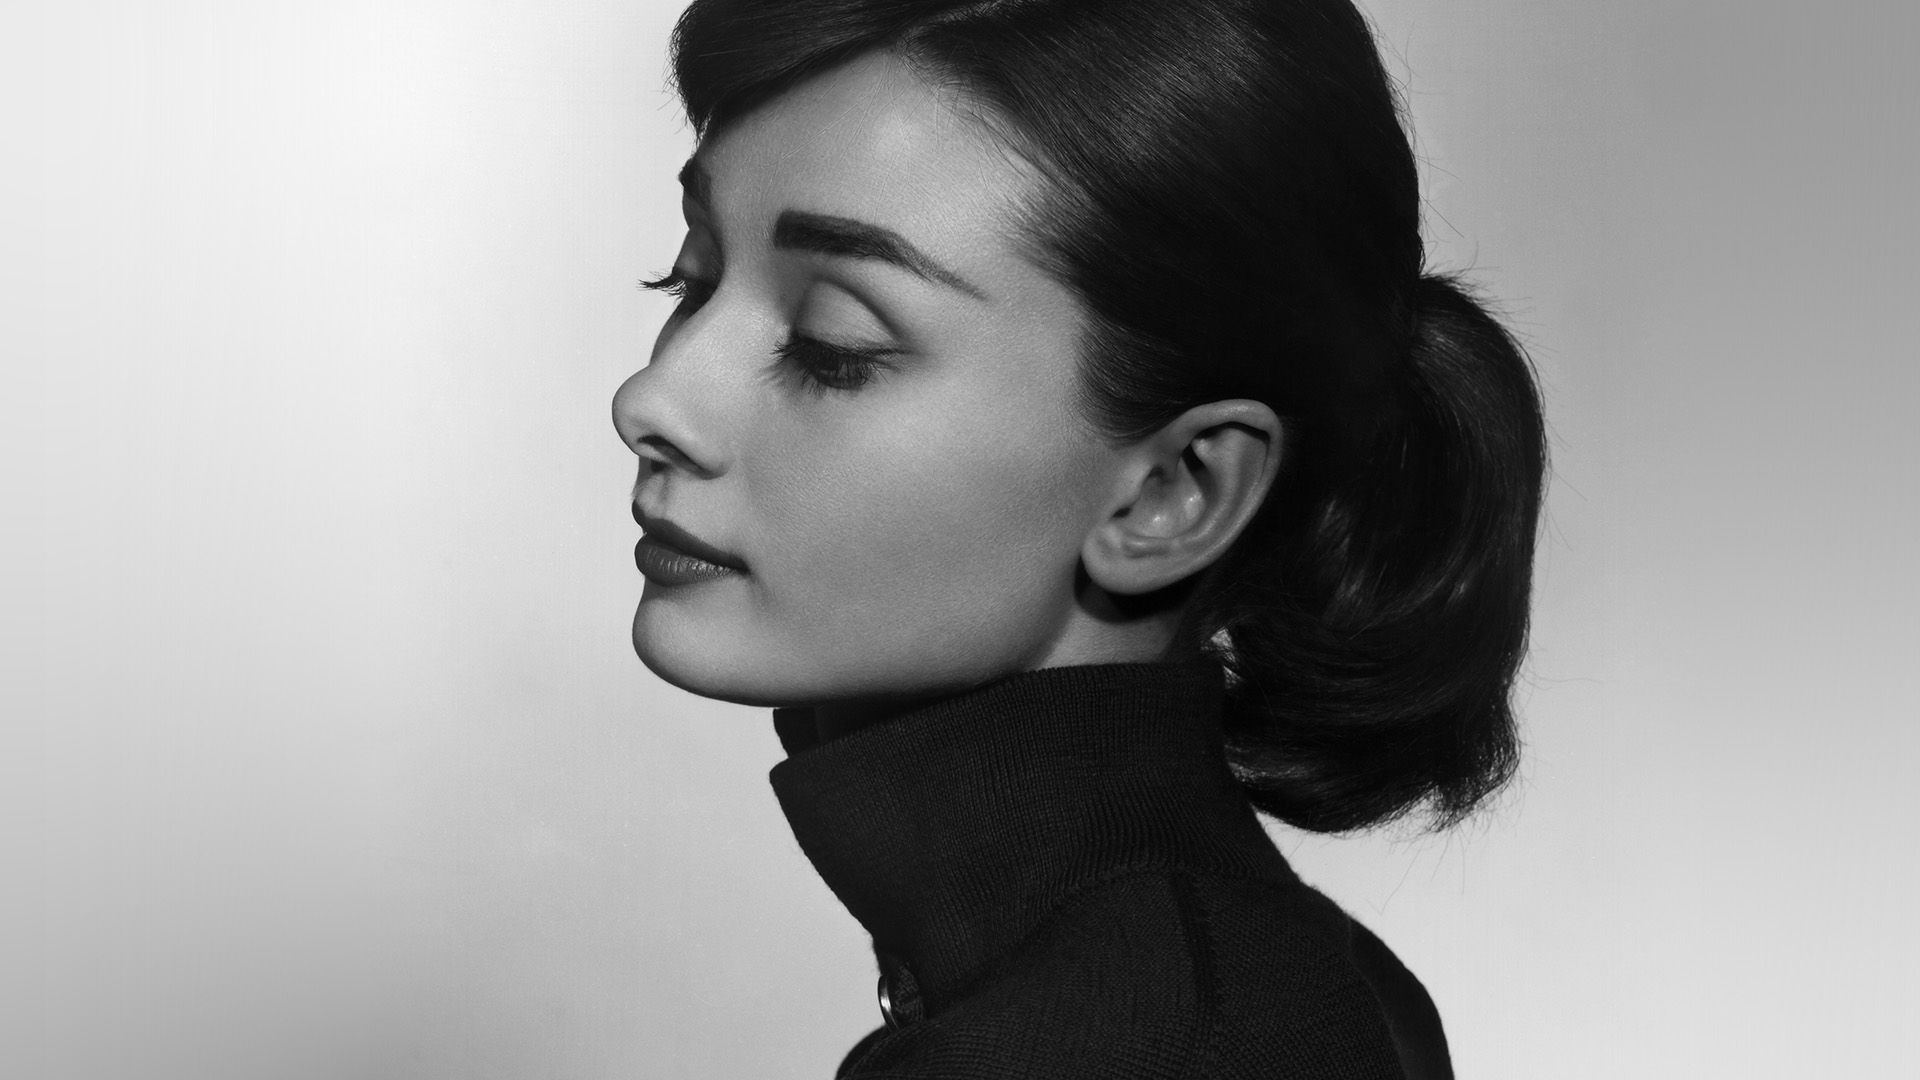 Car Wallpapers For Iphone 7 Hn97 Audrey Hepburn Bw Film Dark Wallpaper